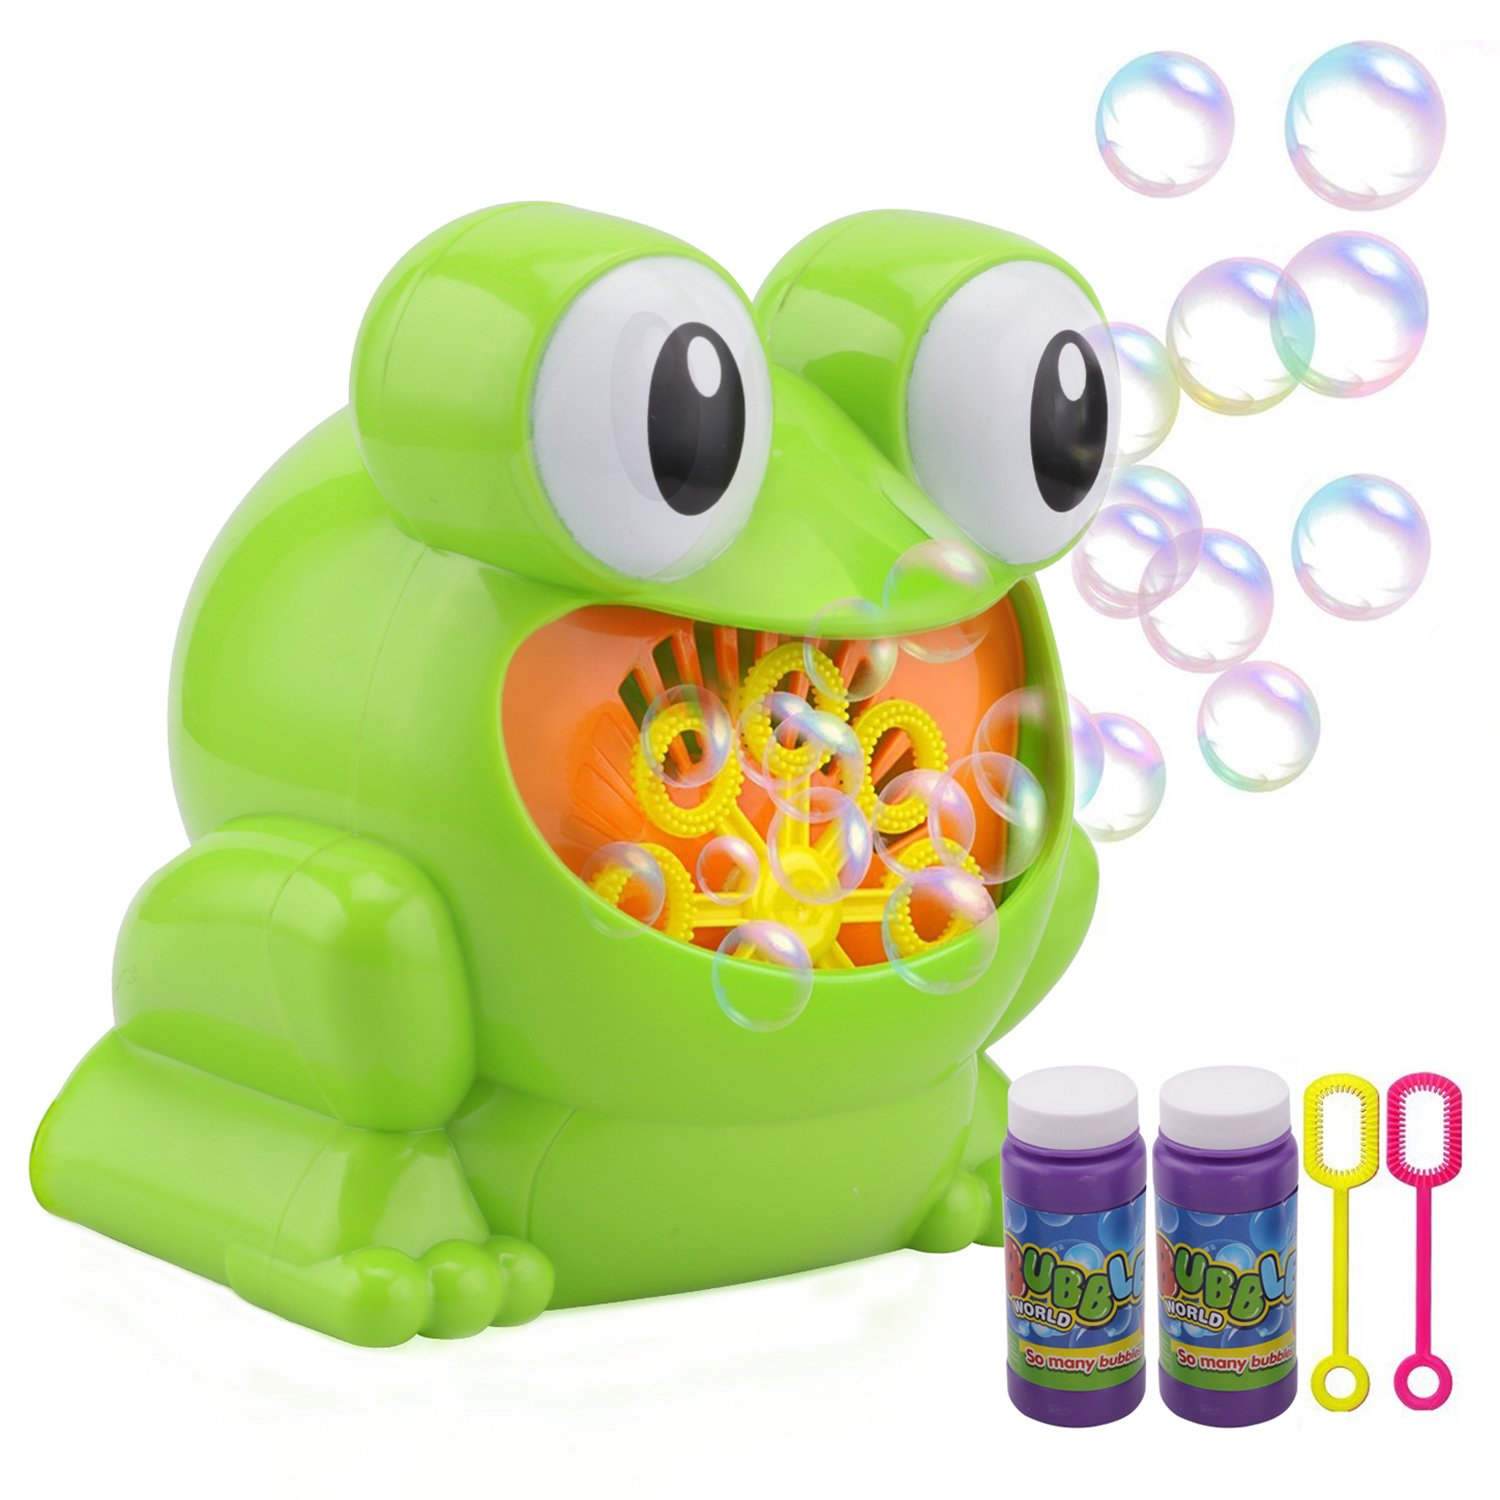 Rely2016 Frog Bubble Machine, Automatic Animal Bubble Blower Machine Indoor Outdoor Games for Kids with 2 Bottles Bubble Solution, More Than 500 Bubbles Per Minute for Party and Gift